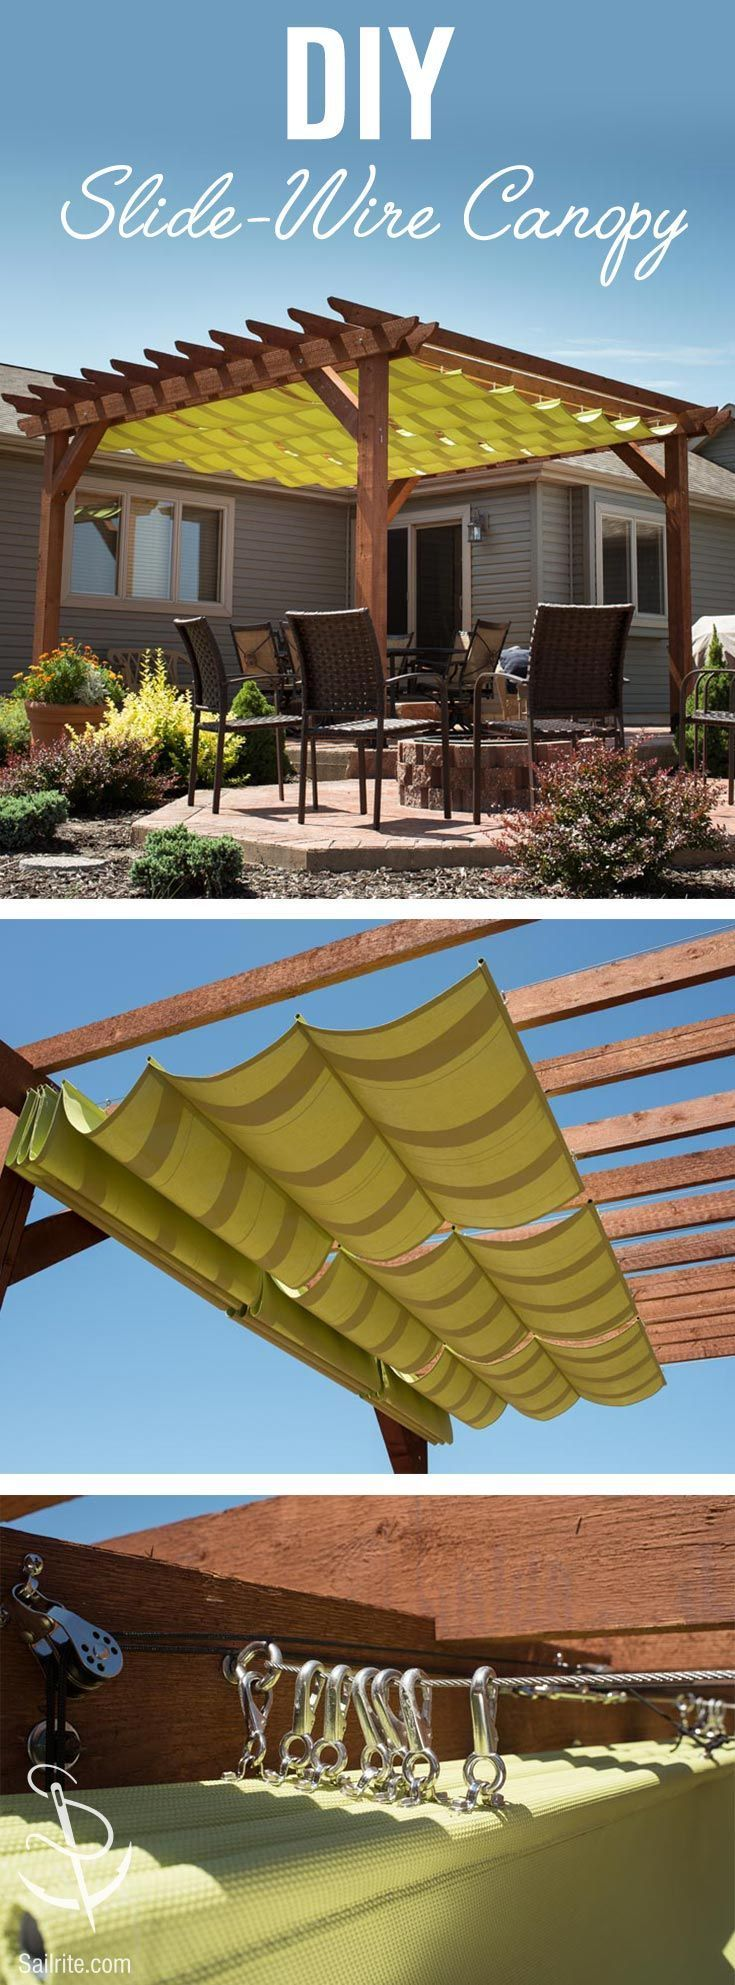 How to Make a Slide-On Wire Hung Canopy Video